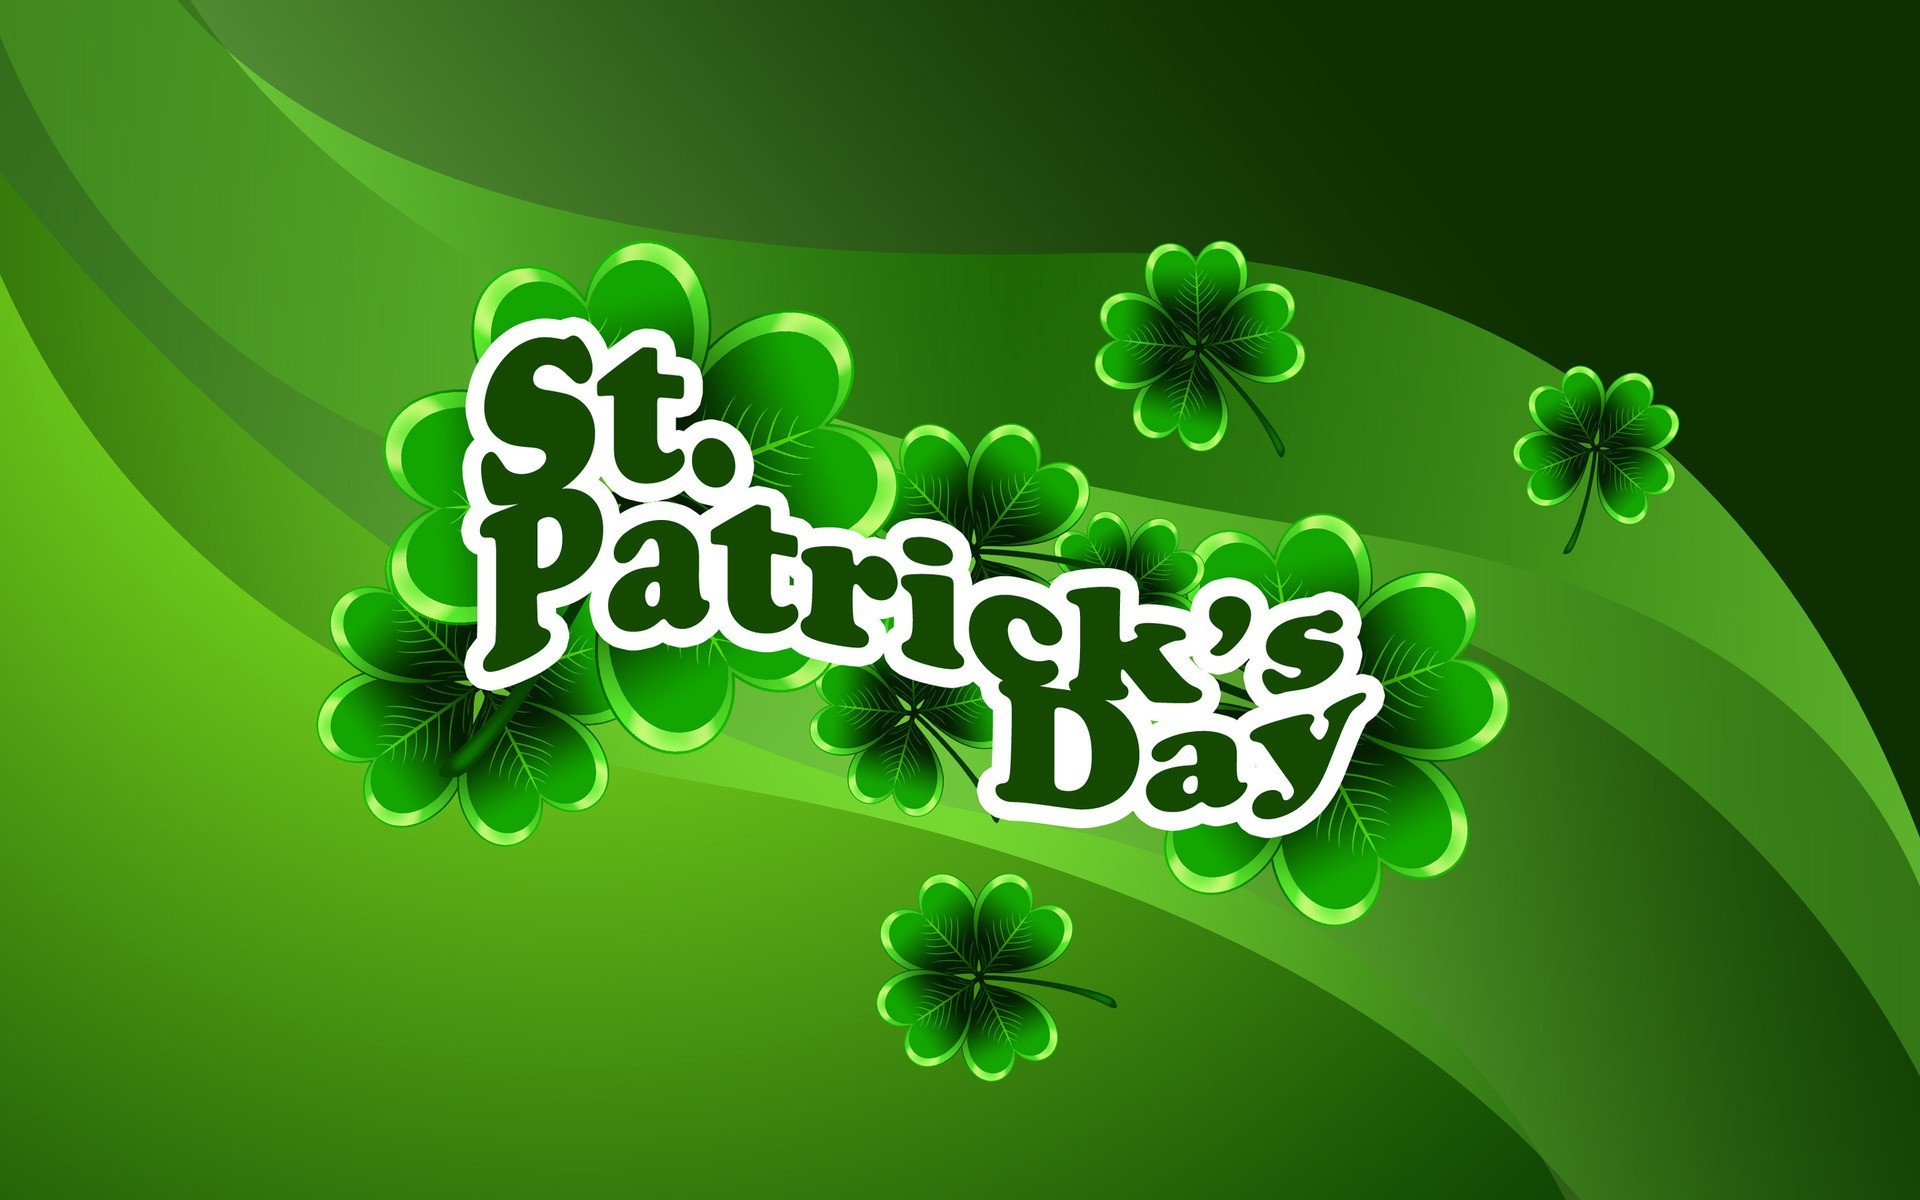 Saint Patricks Day Wallpaper Kolpaper Awesome Free Hd Wallpapers